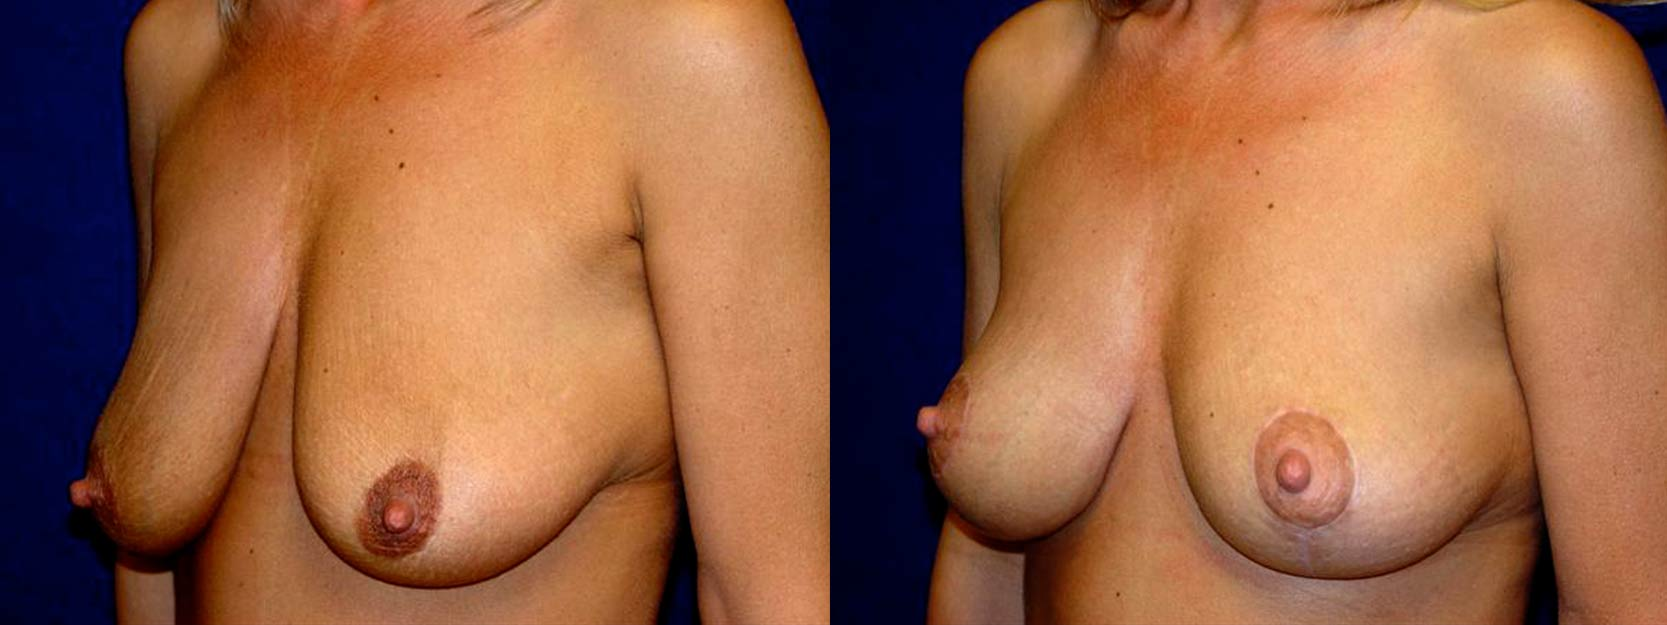 Left 3/4 View - Breast Lift After Pregnancy